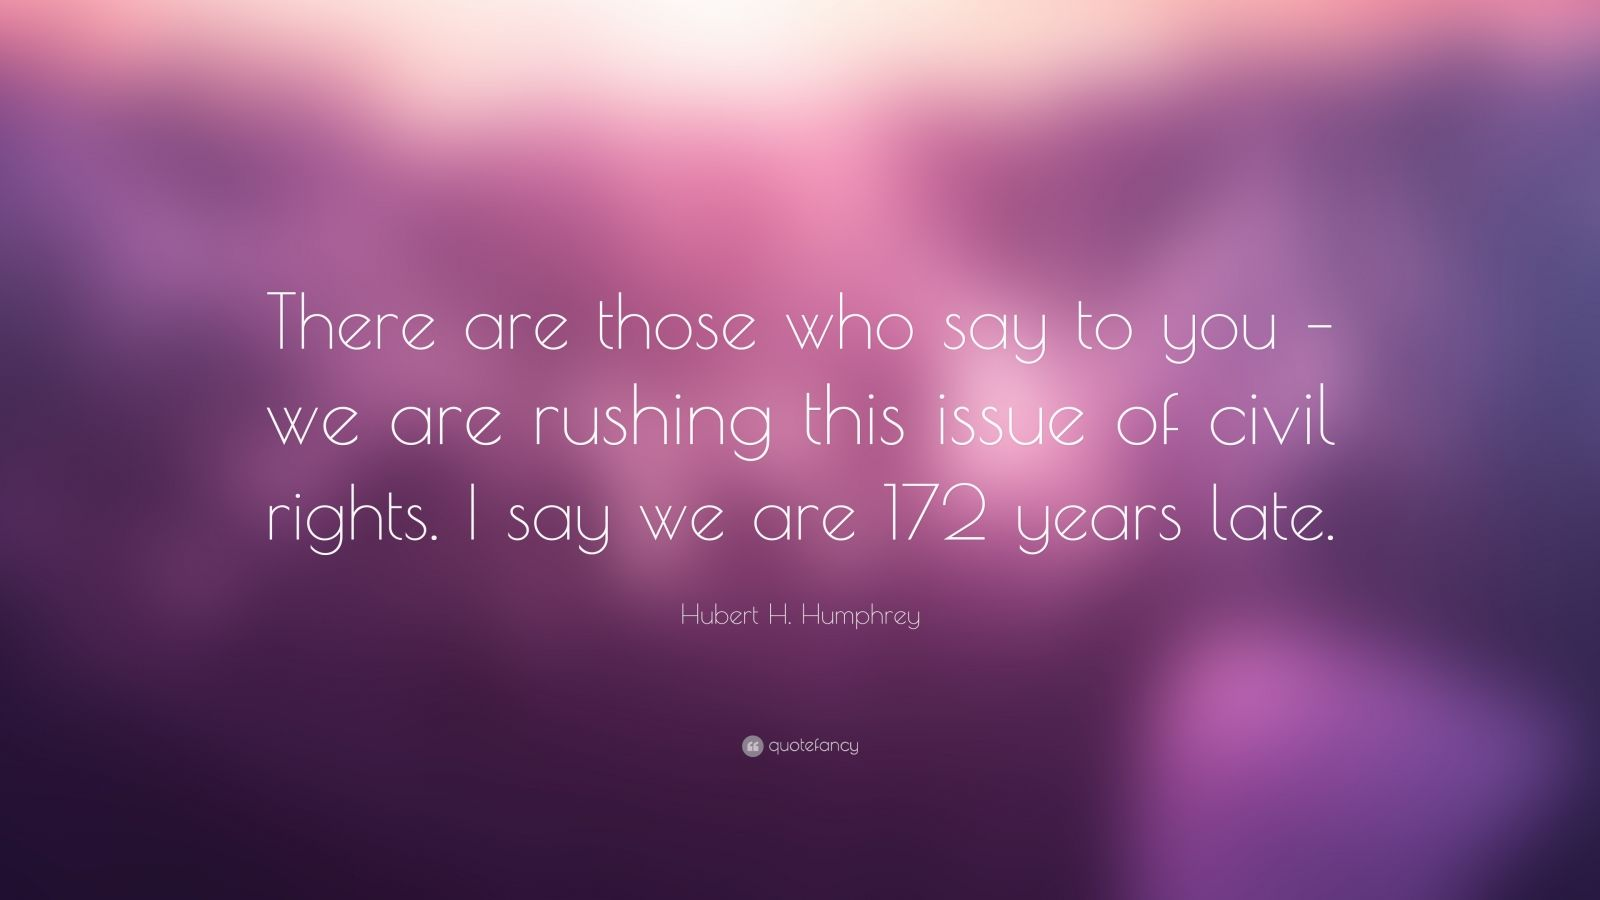 """Hubert H. Humphrey Quote: """"There are those who say to you – we are rushing this issue of civil rights. I say we are 172 years late."""""""